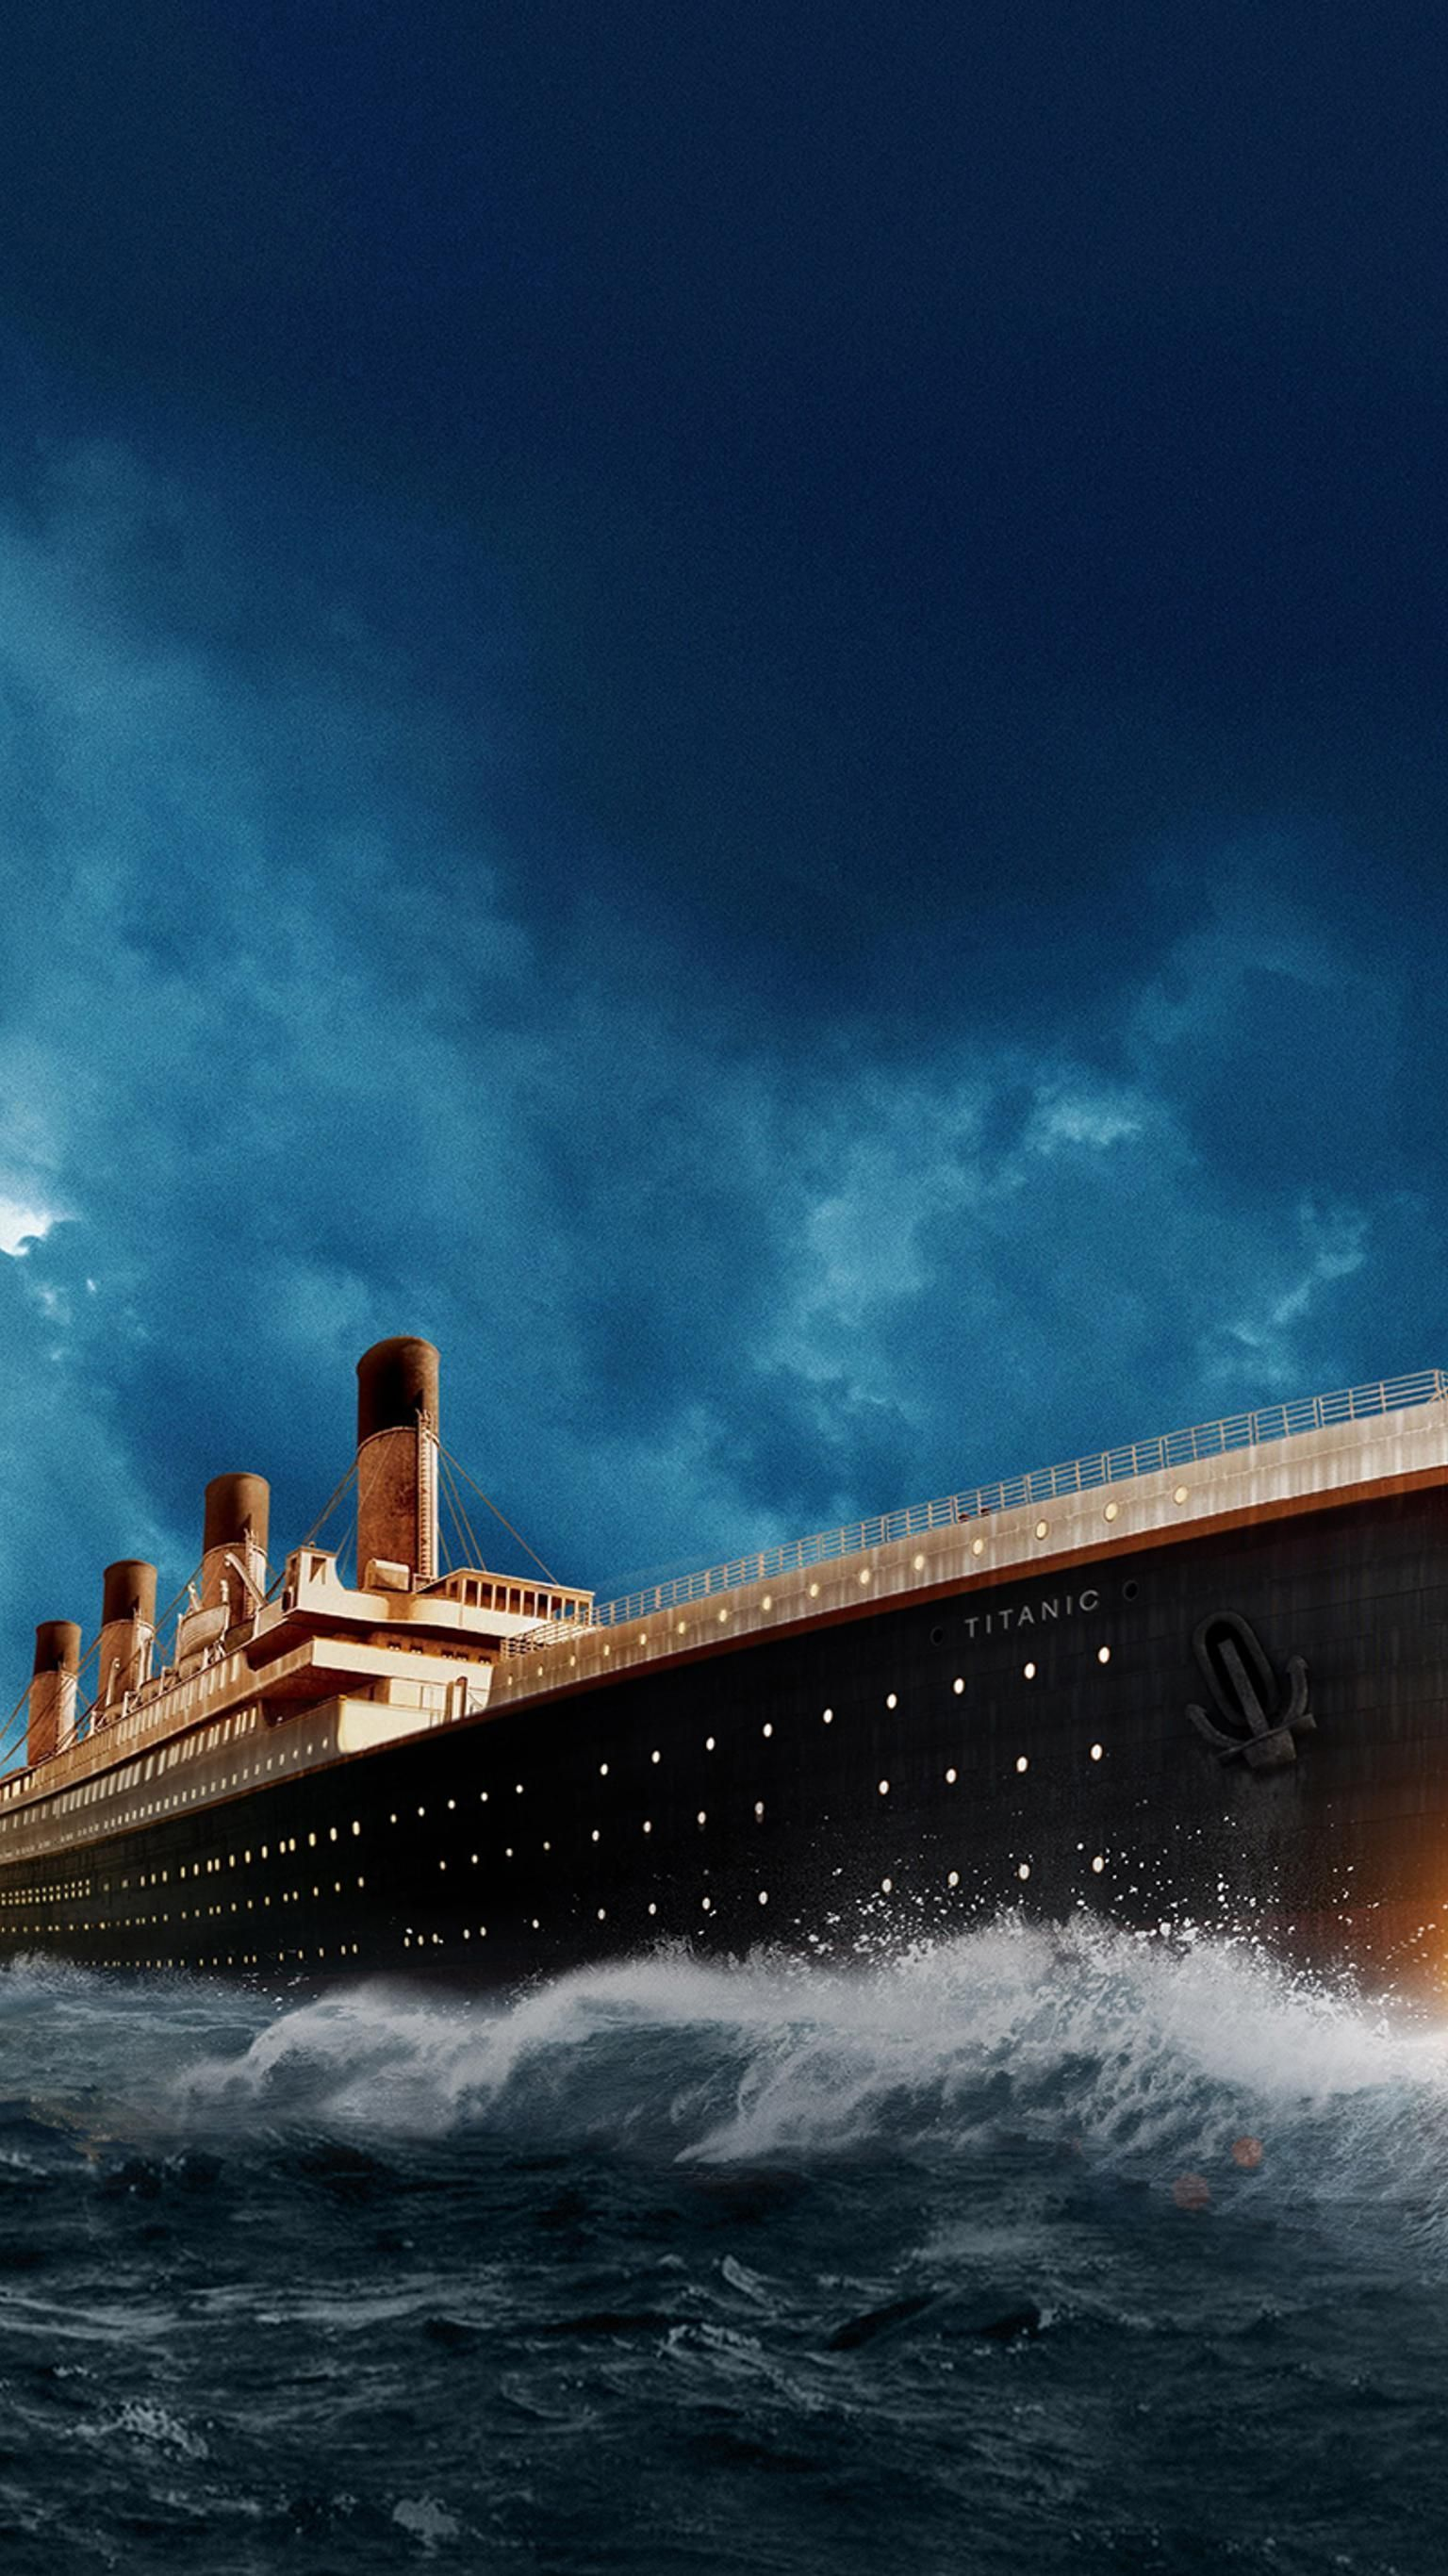 Titanic Mobile Wallpapers Wallpaper Cave